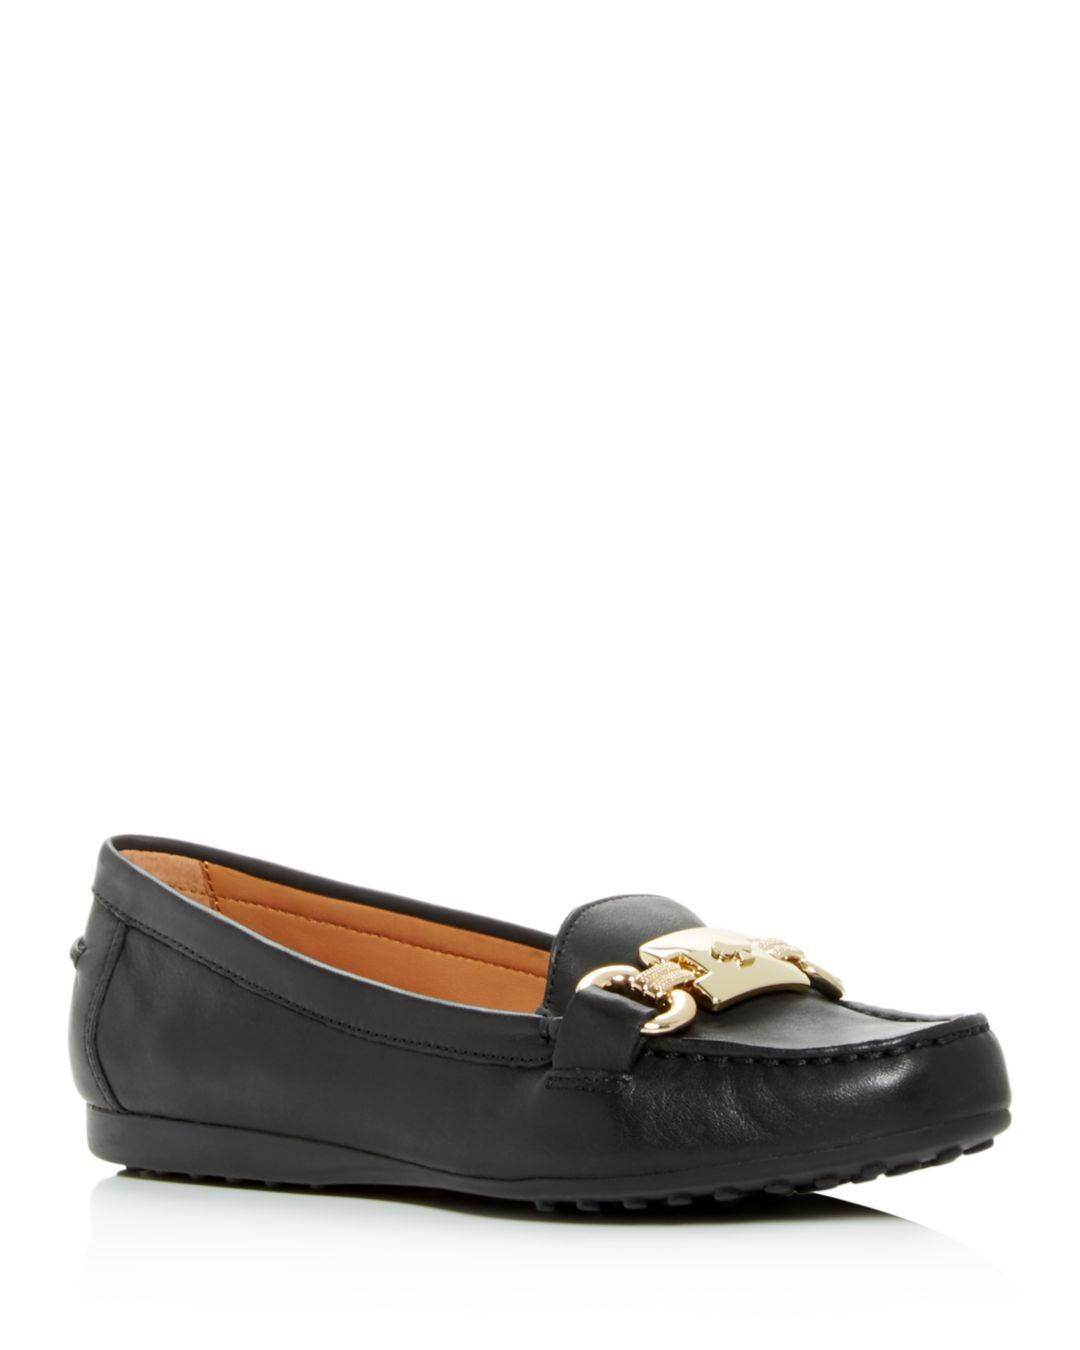 91e4879c534 Lyst - Kate Spade Women s Carson Loafers in Black - Save 25%